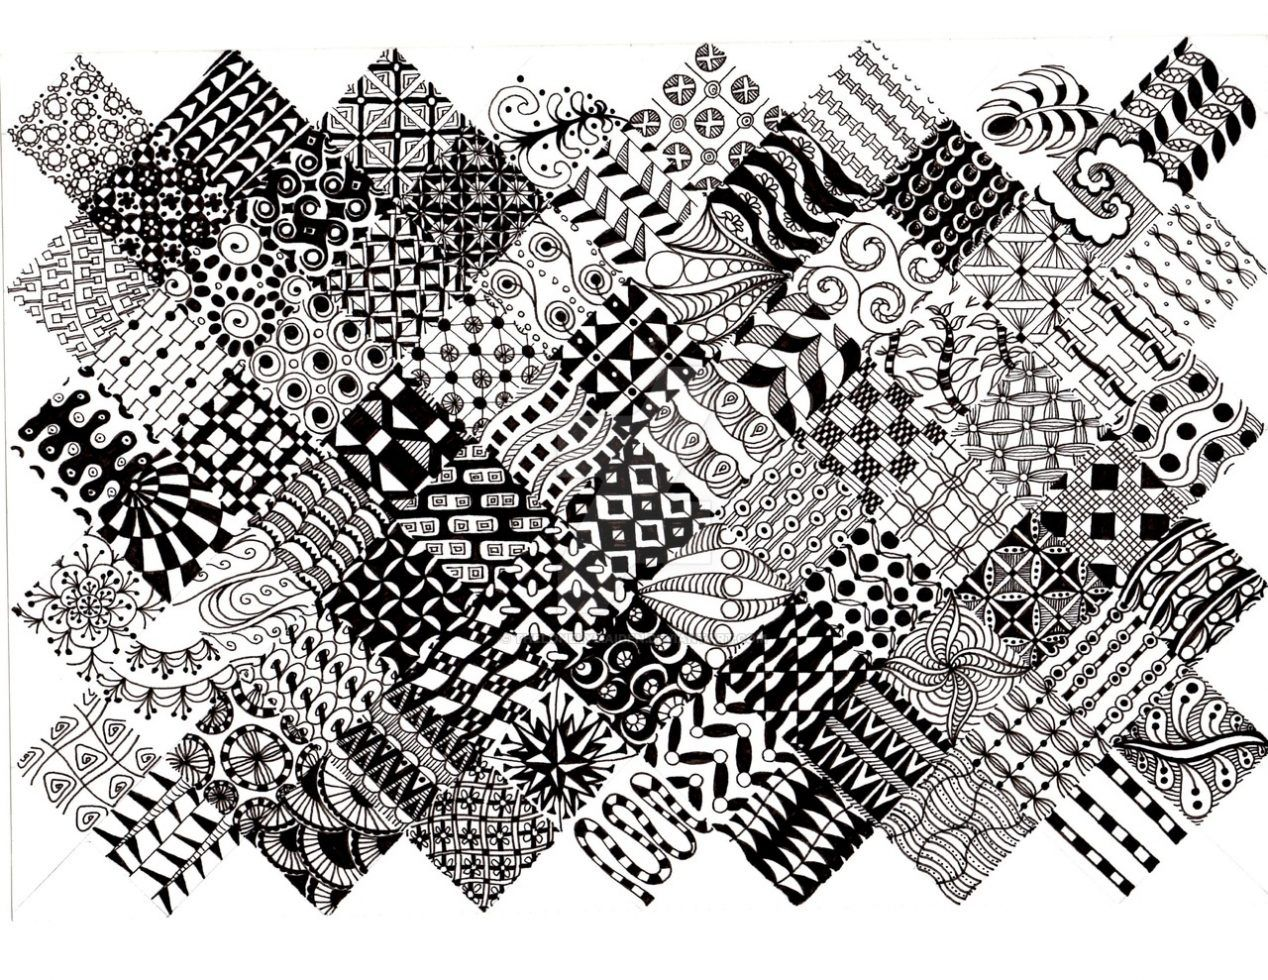 Zentangle Patterns To Print Zentangle Patterns Easy Zentangle